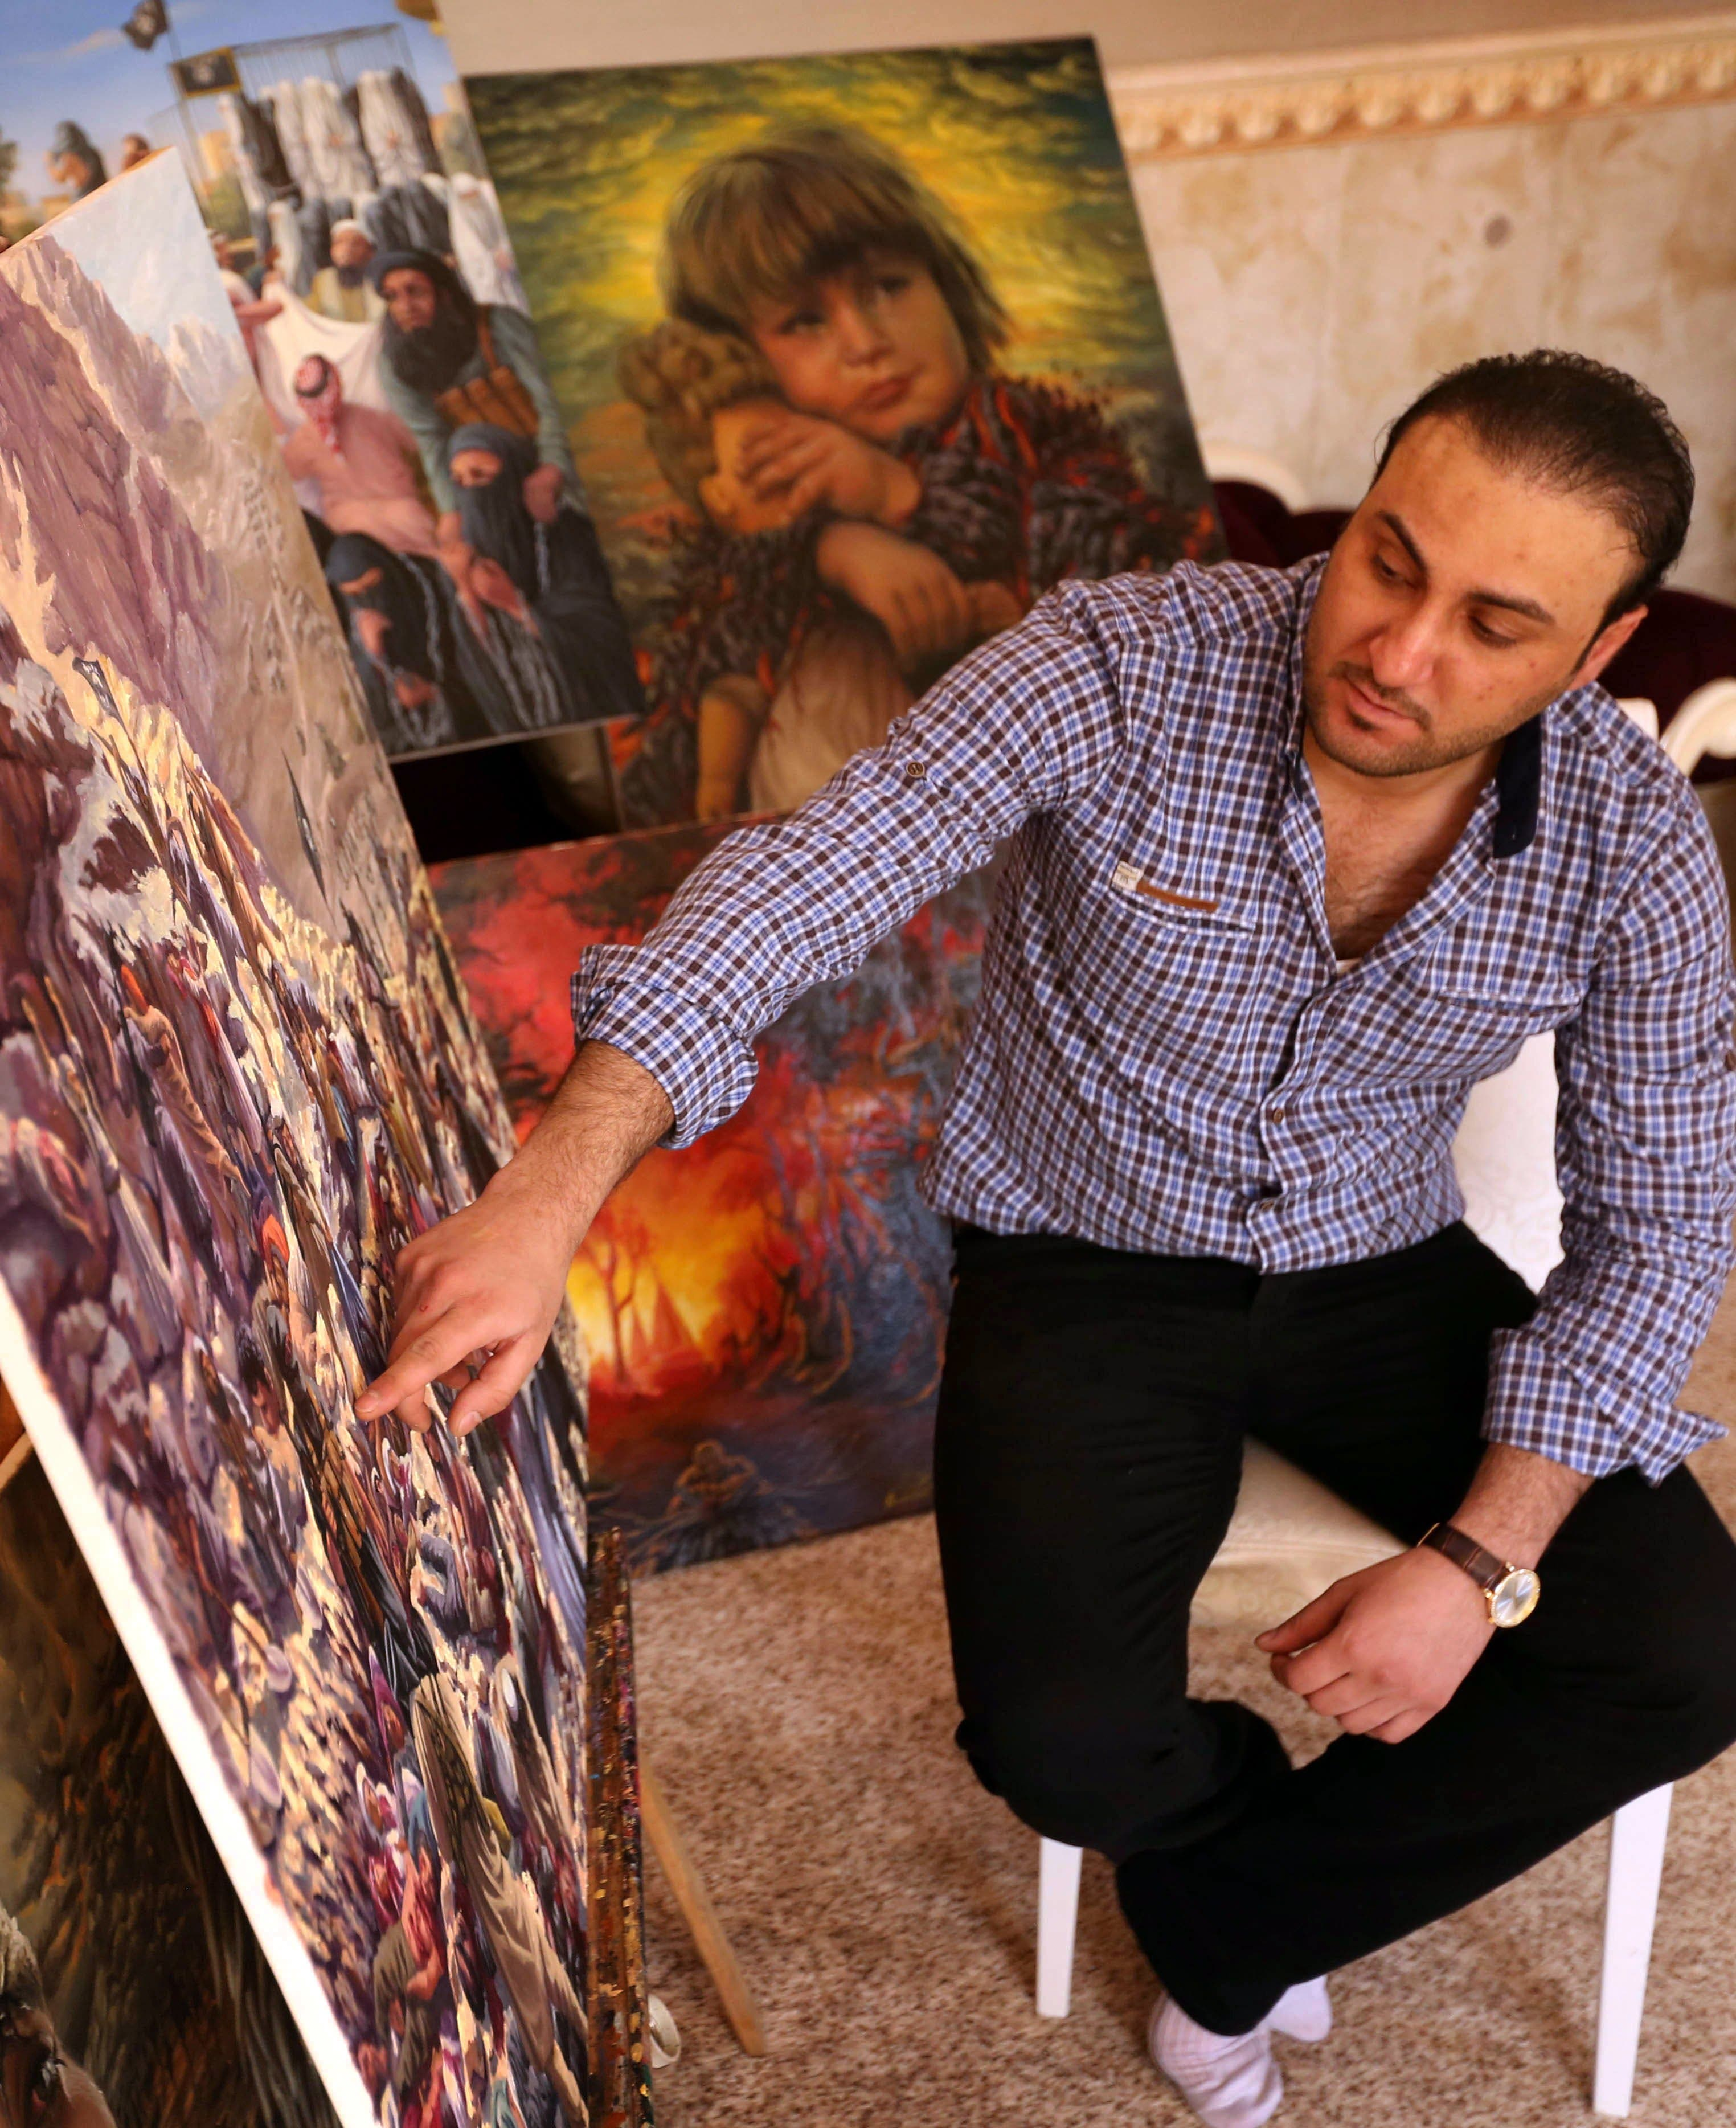 Iraqi painter Ammar Salim poses near some of his art pieces at his workshop in the Iraqi Kurdish city of Dohuk, on March 26, 2015. AFP